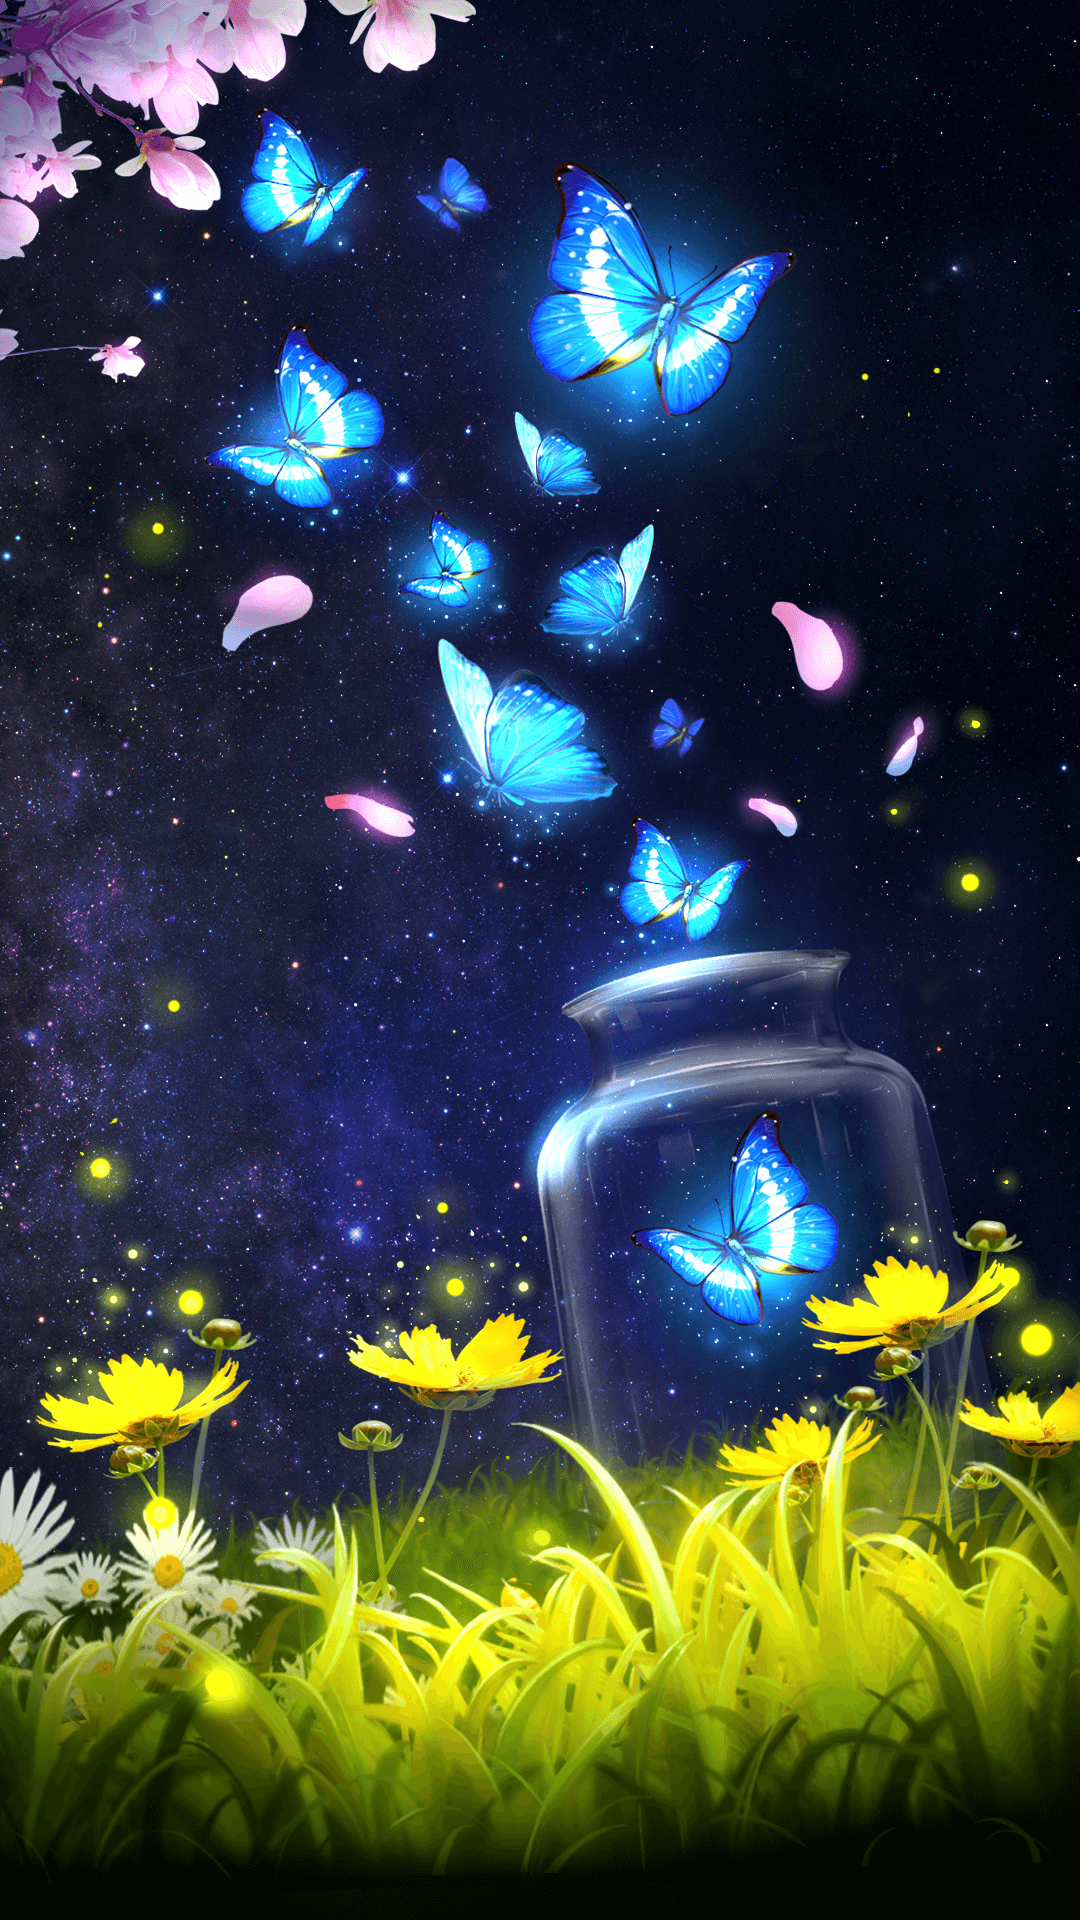 Android live wallpaper/background!Shiny blue butterfly